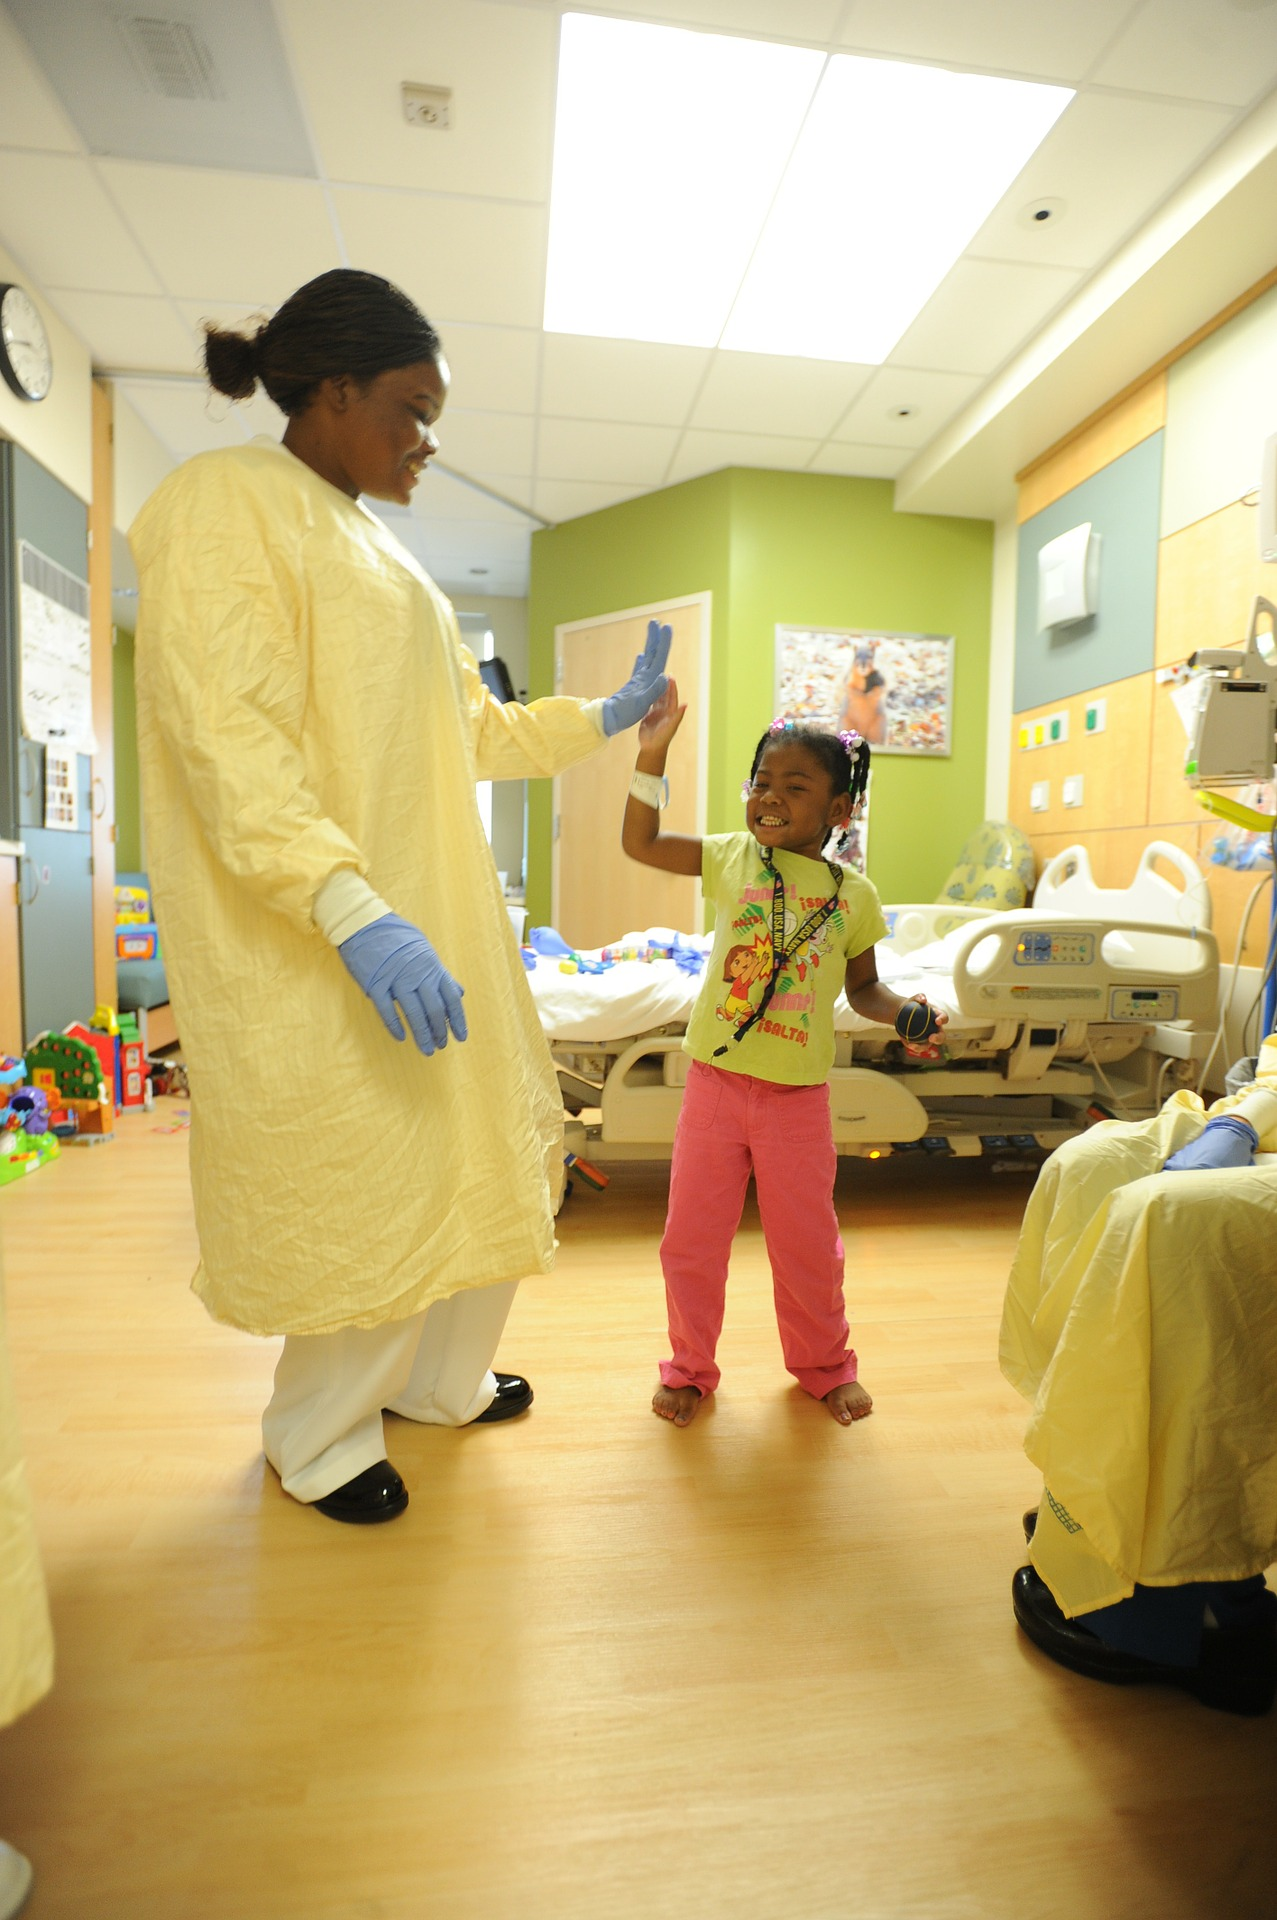 Healthcare worker in pediatric ward interacting with patient